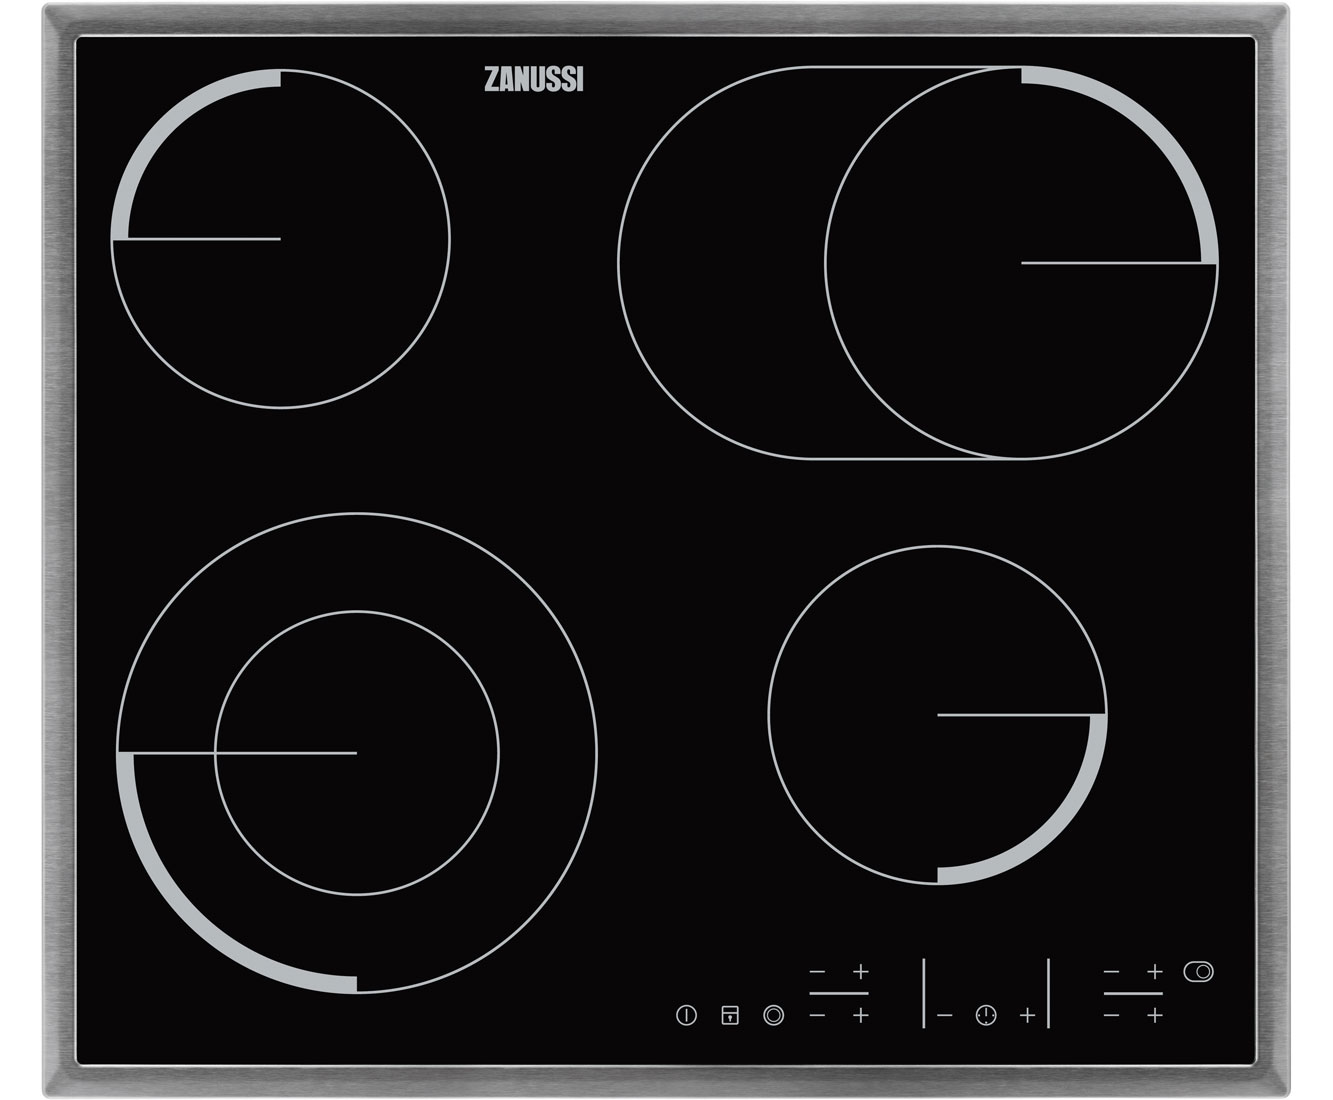 Wiring A Zanussi Ceramic Hob Best Secret Diagram In New Oven And Induction Diynot Forums Zev6646xba Bk 58cm Black Ao Com How To Wire Electric